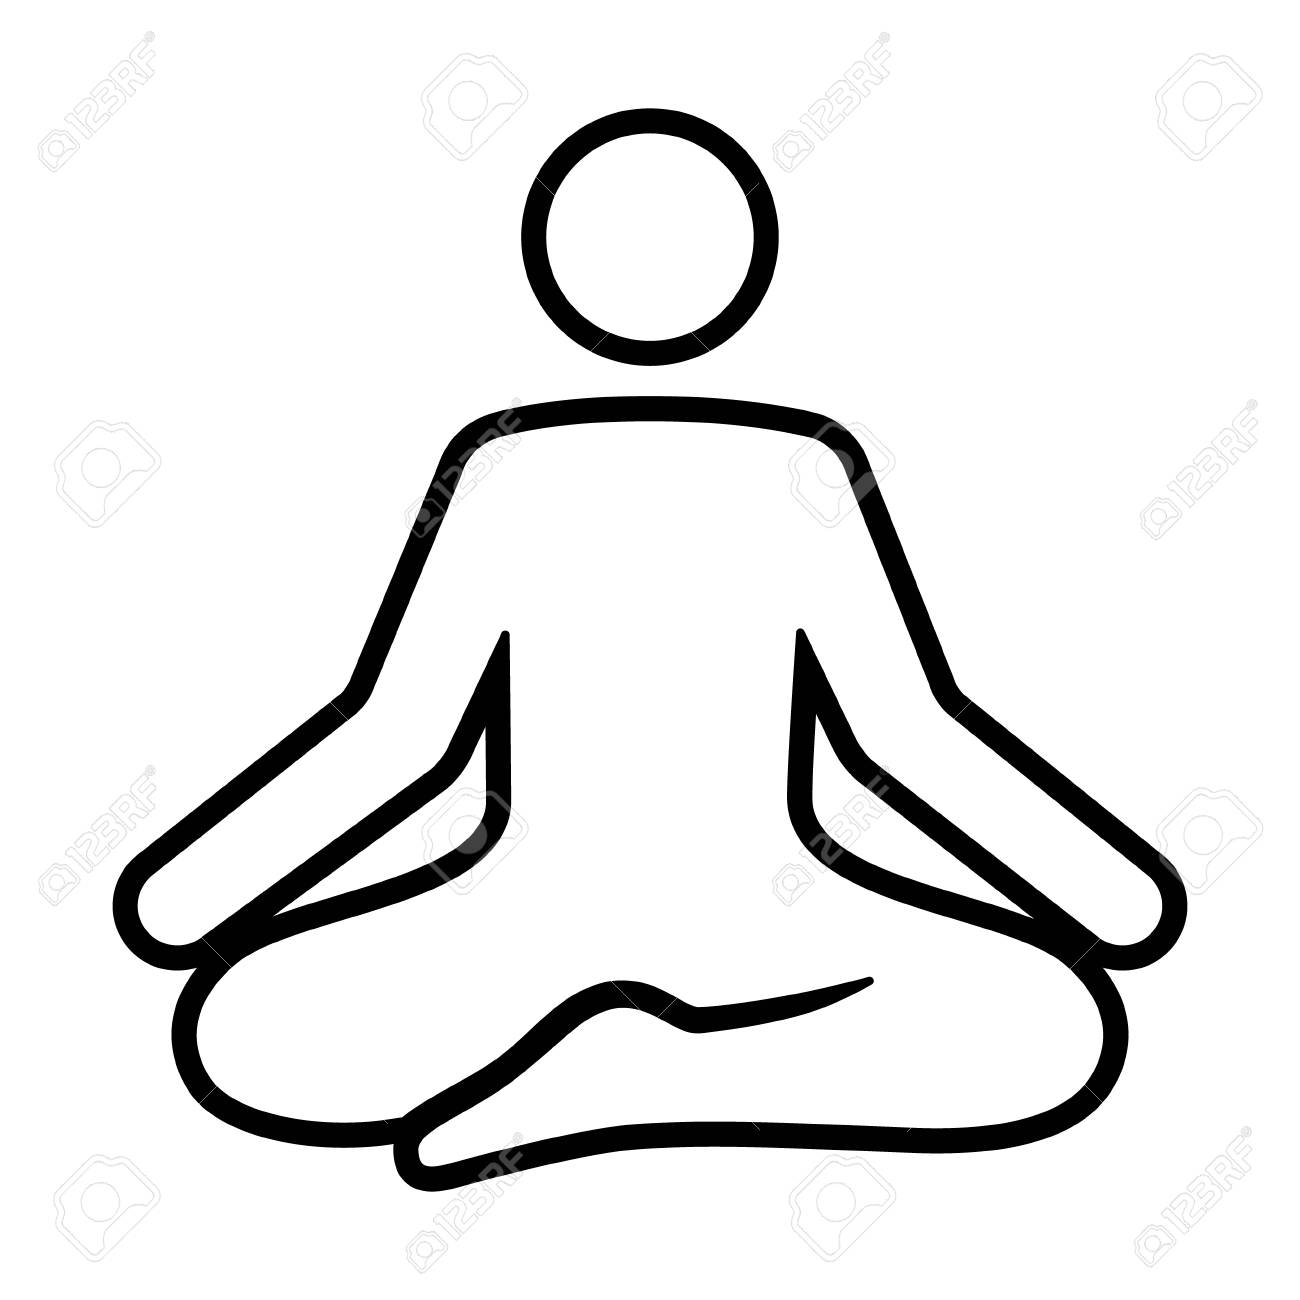 A person meditating in a state of zen calmness line art vector